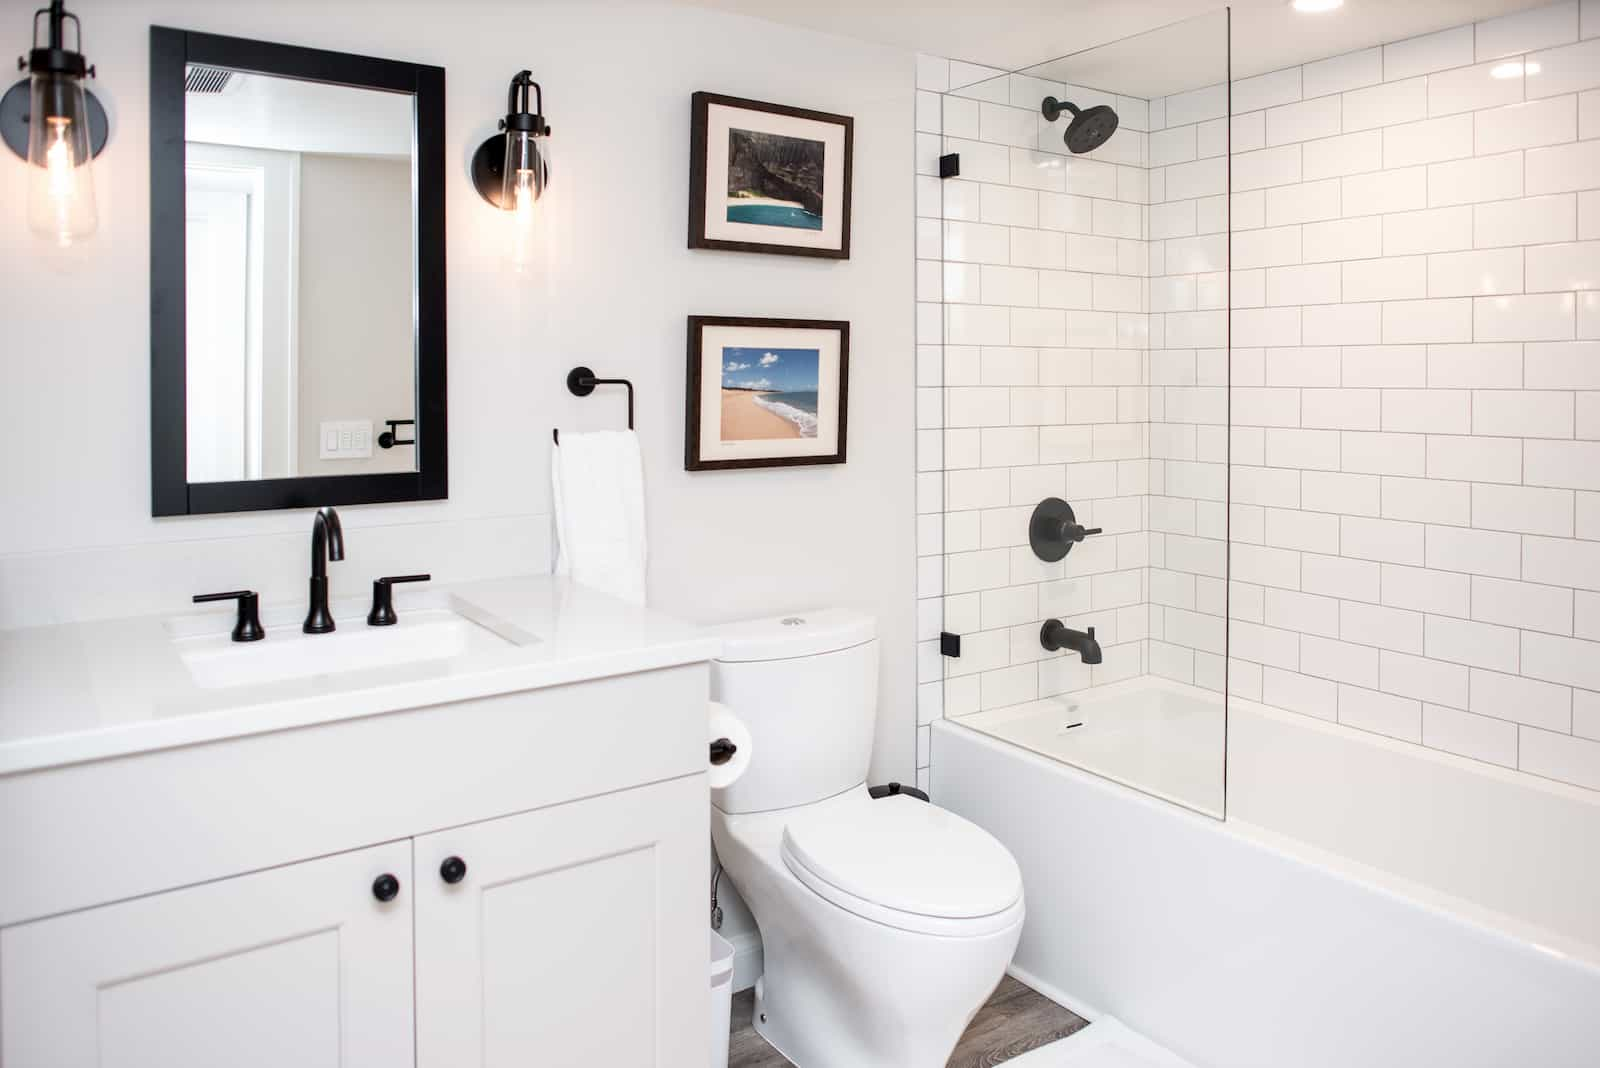 Are Permits Required For A Bathroom Remodel In Seattle